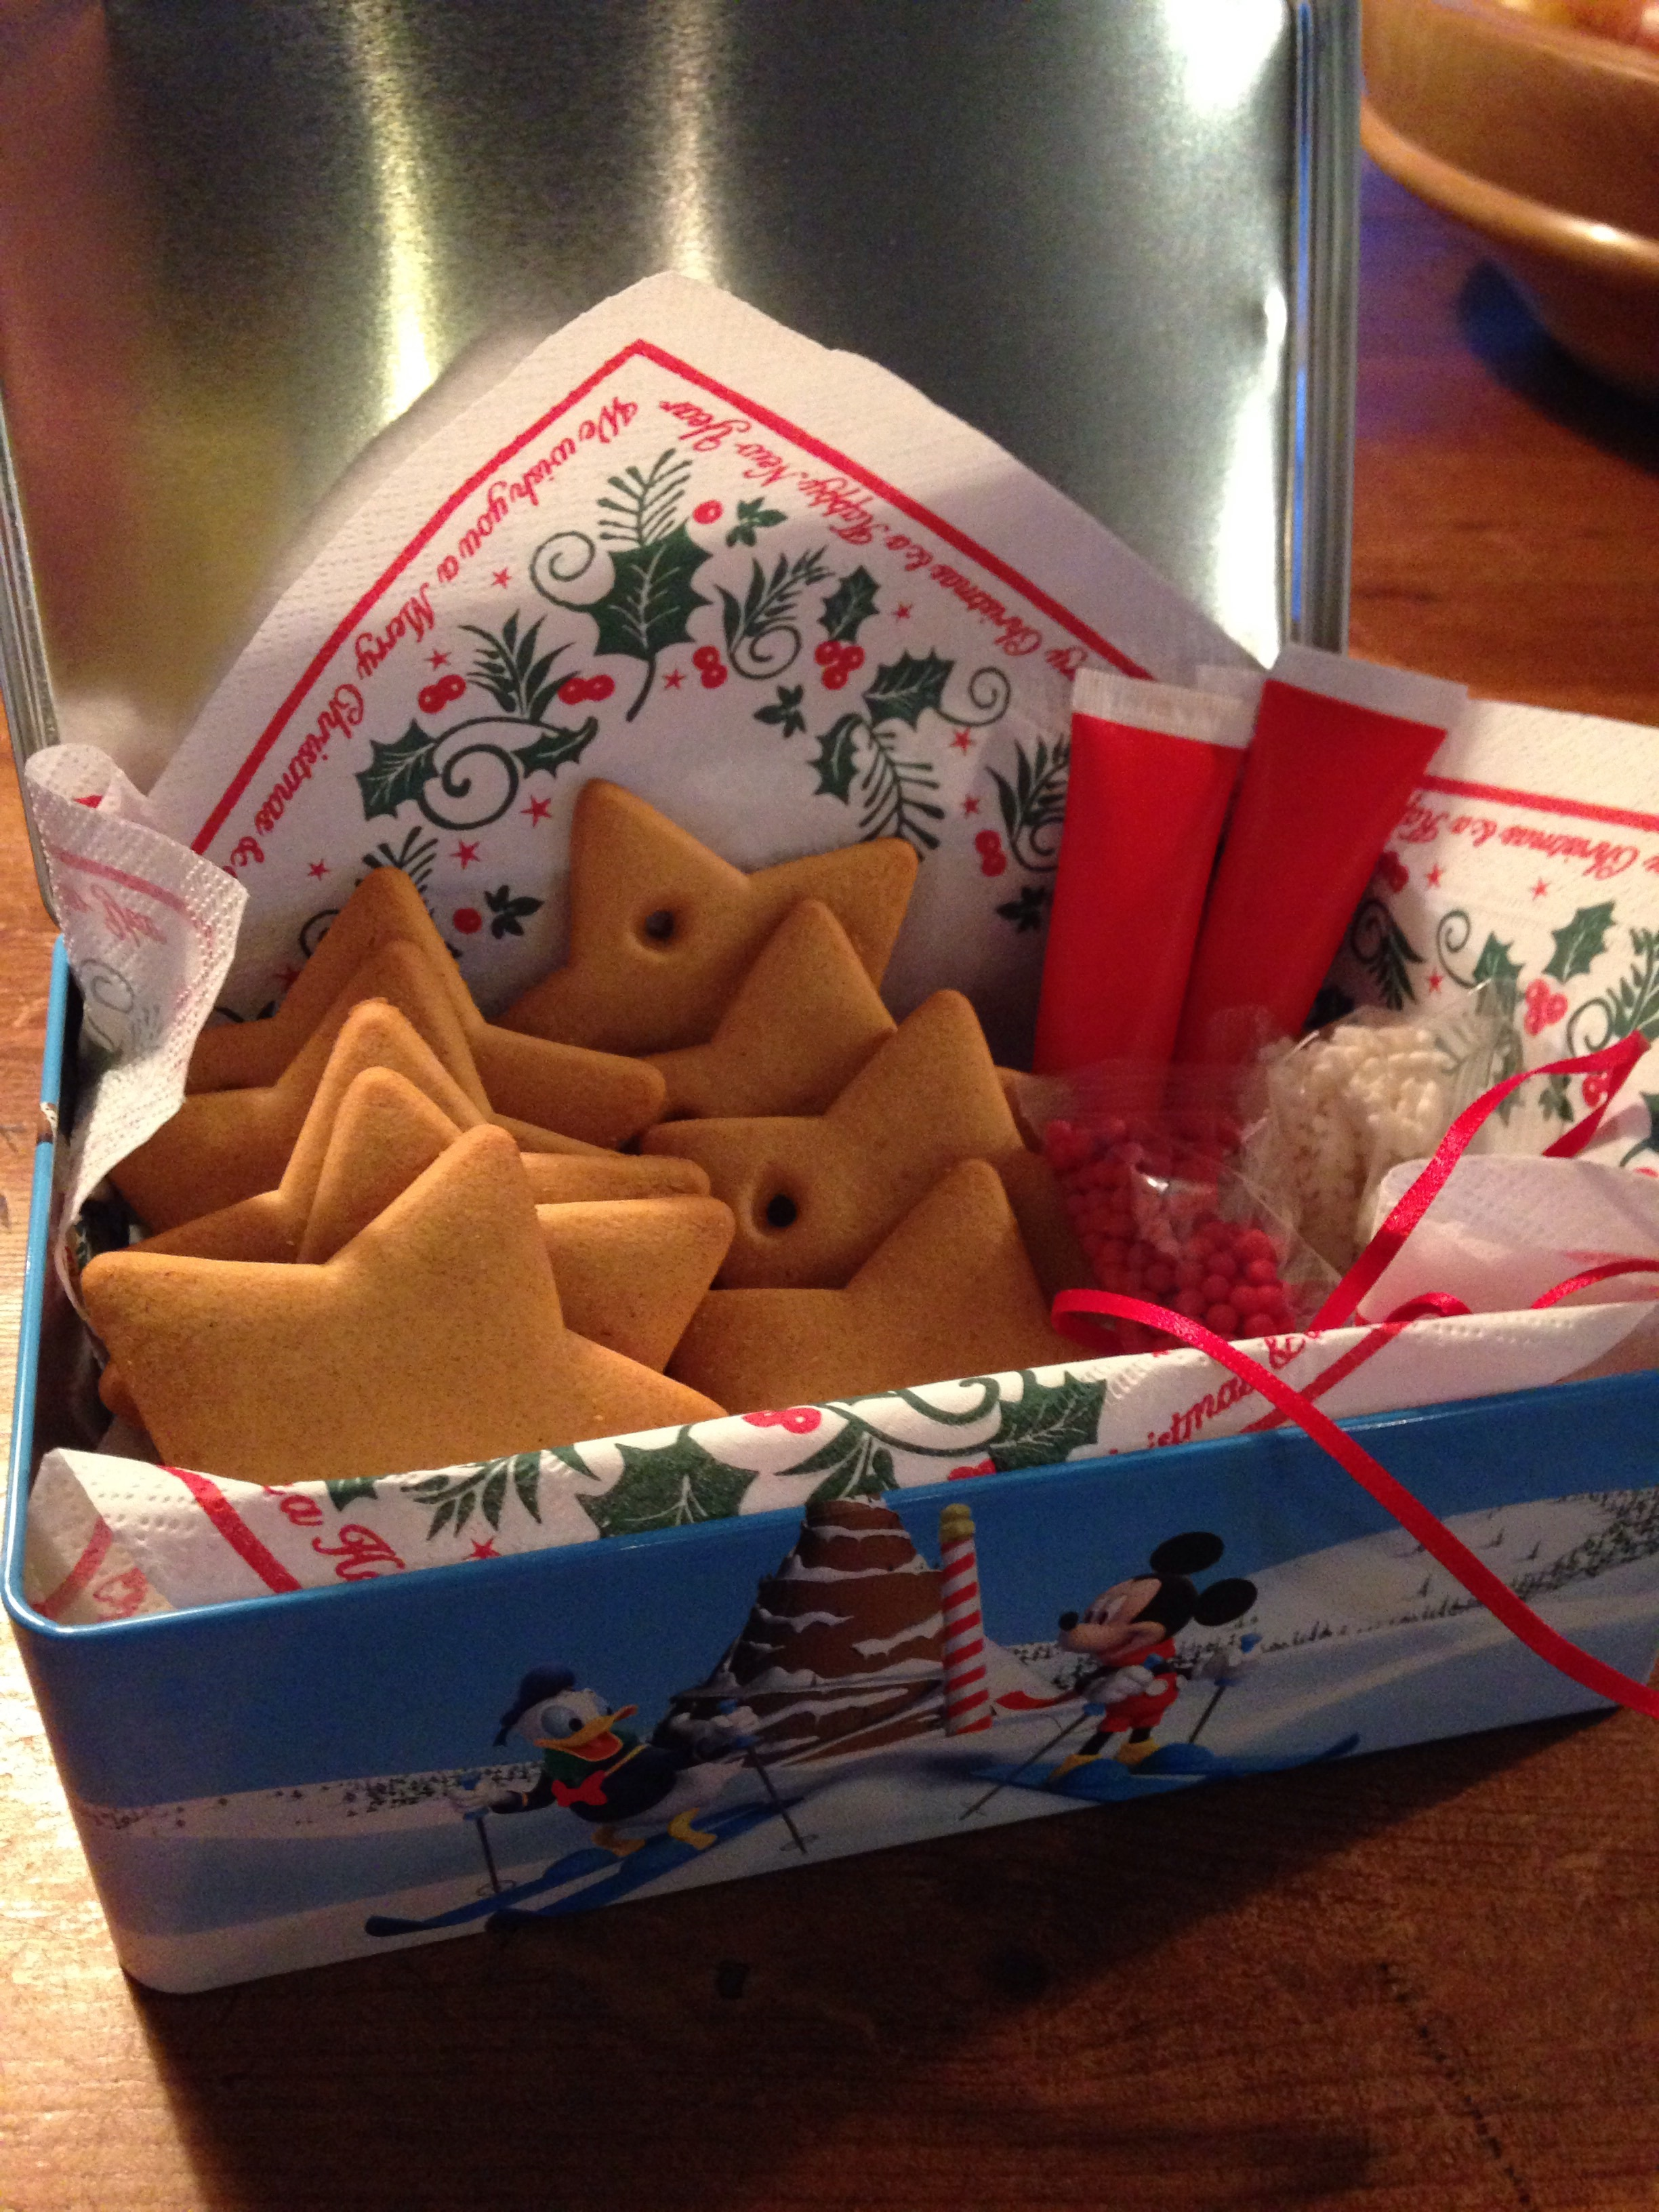 A biscuit decorating kit from the Co-op presented in a festive tin.